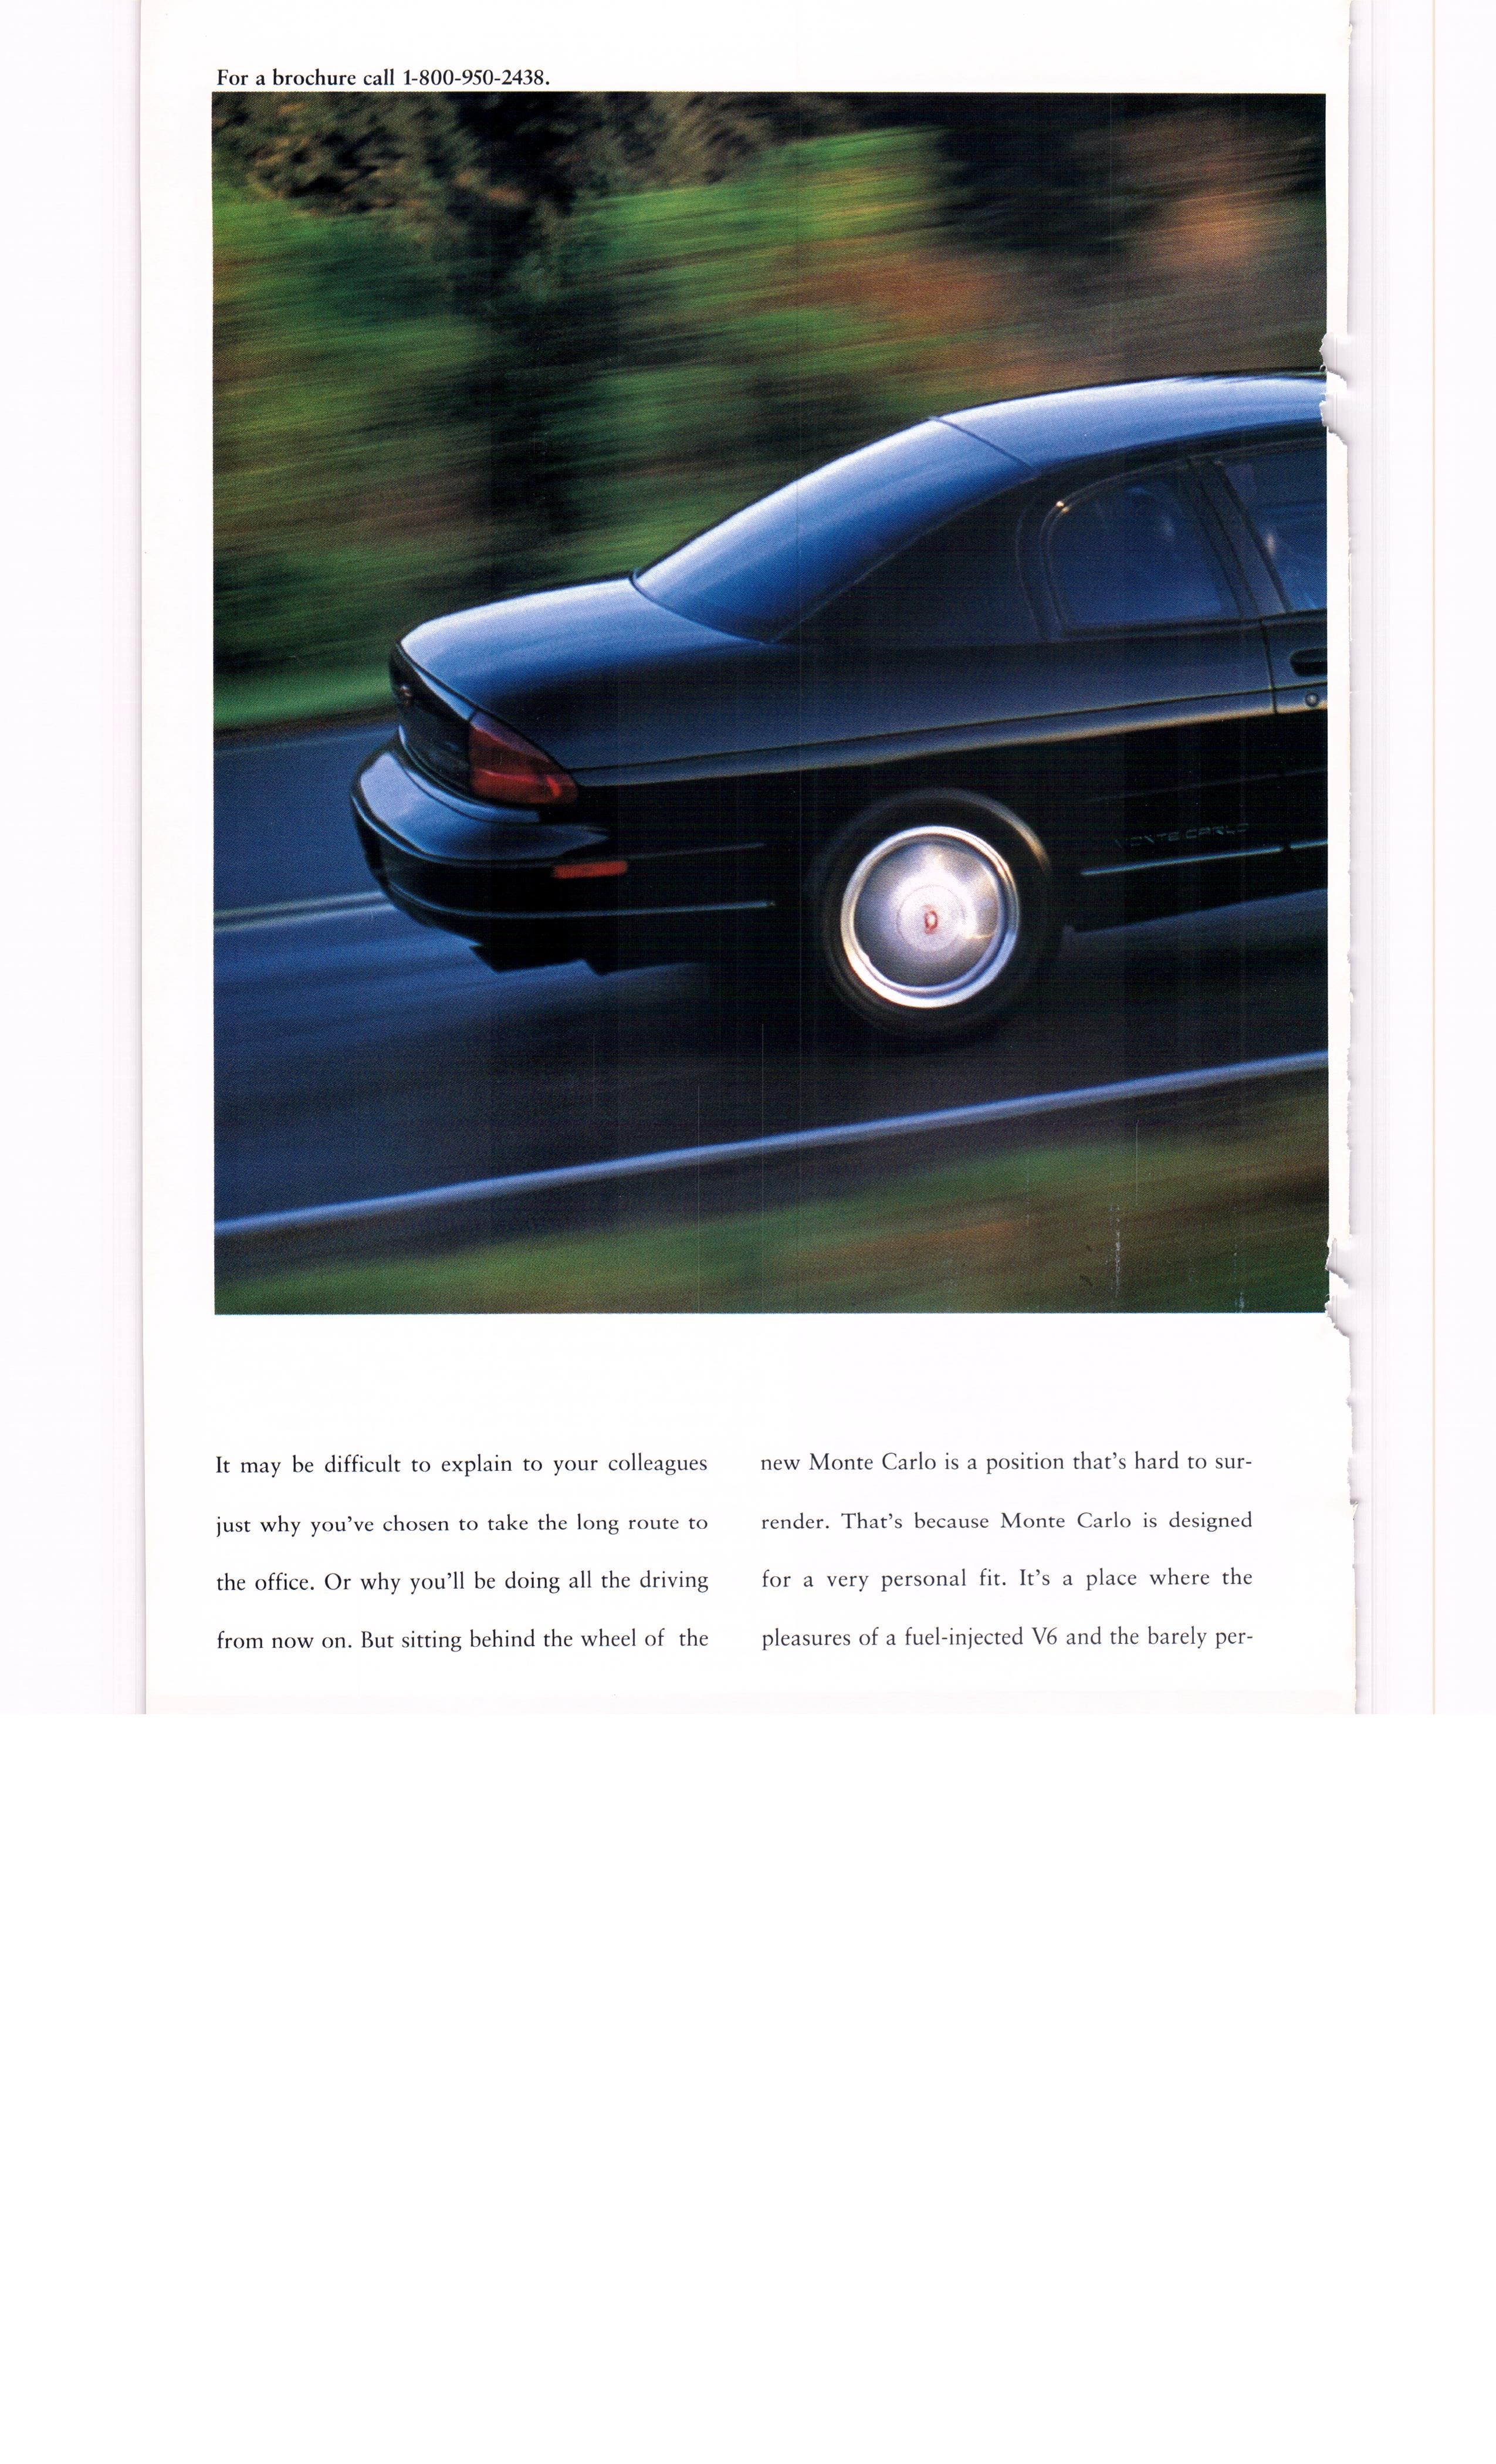 hight resolution of 1994 chevy monte carlo ad2 national geographic september 1994